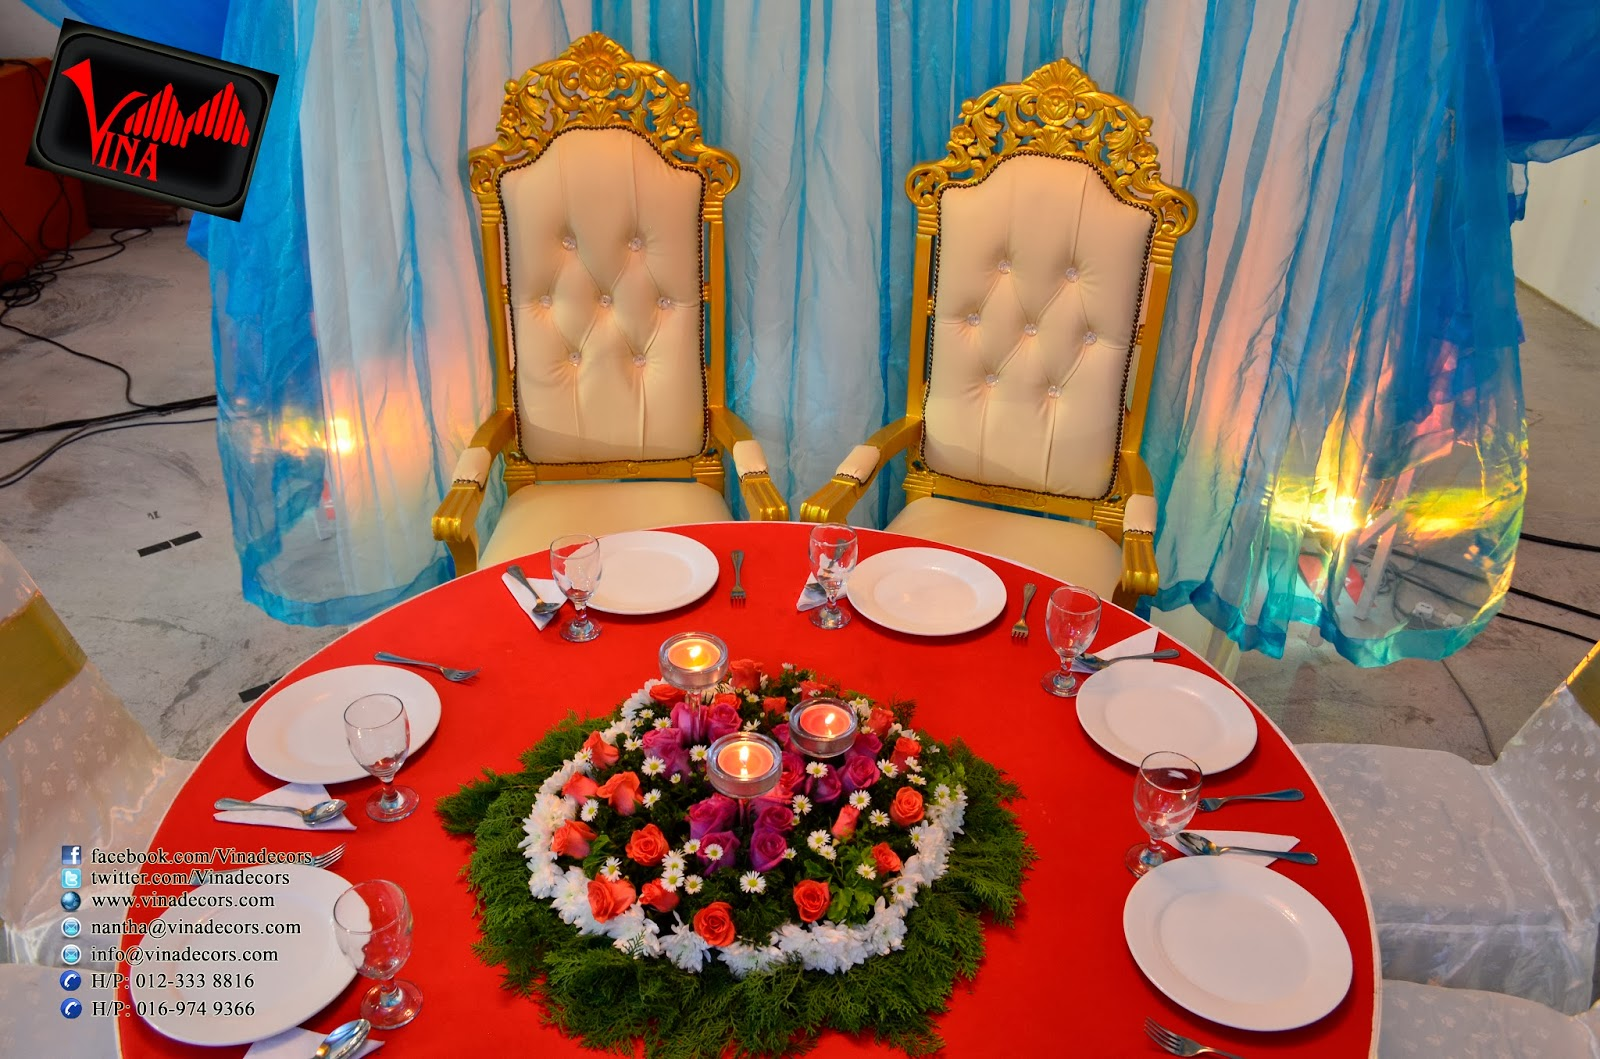 Arabian Concept Wedding and Wedding Dinner Decoration (NanthaKumar weds  Sri MahaLetchumy) at Chinese Hall (Jinjang Selatan) on Saturday 25/01/2014, 7pm.